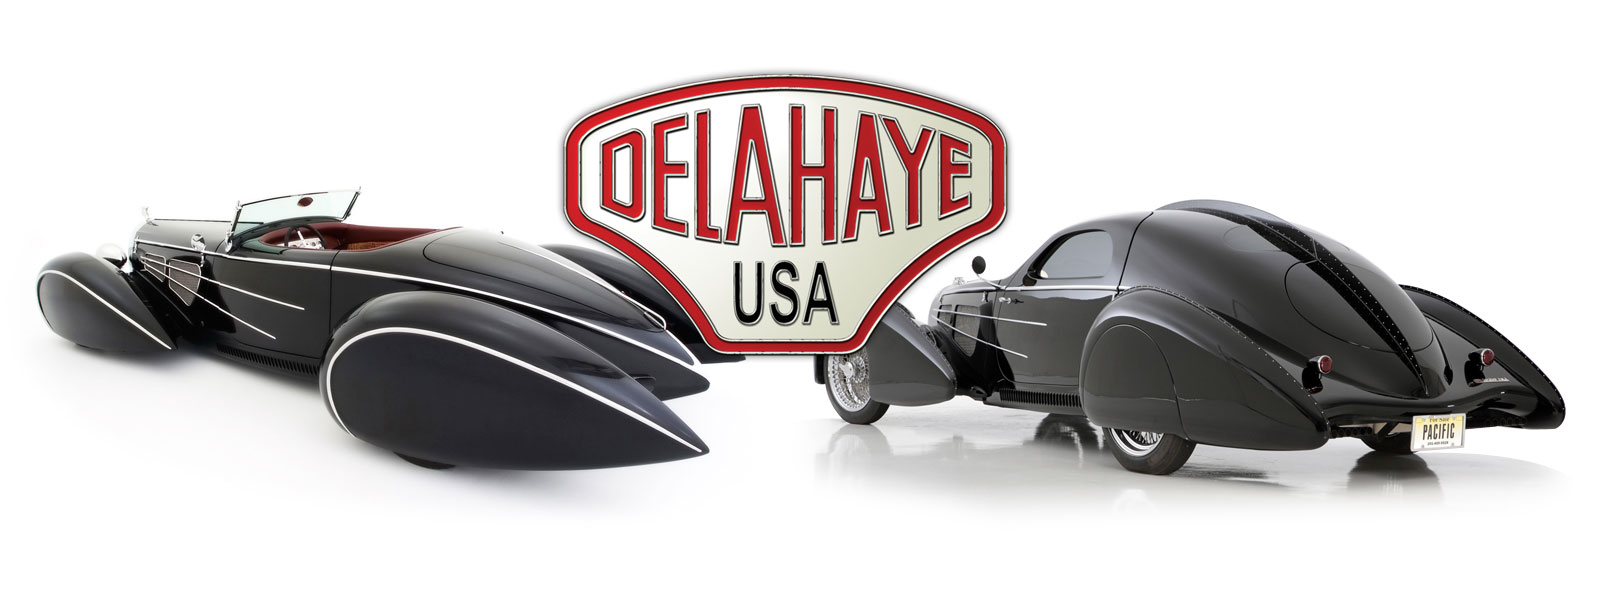 Delahaye USA - Recreating the Most Beautiful Cars in the World